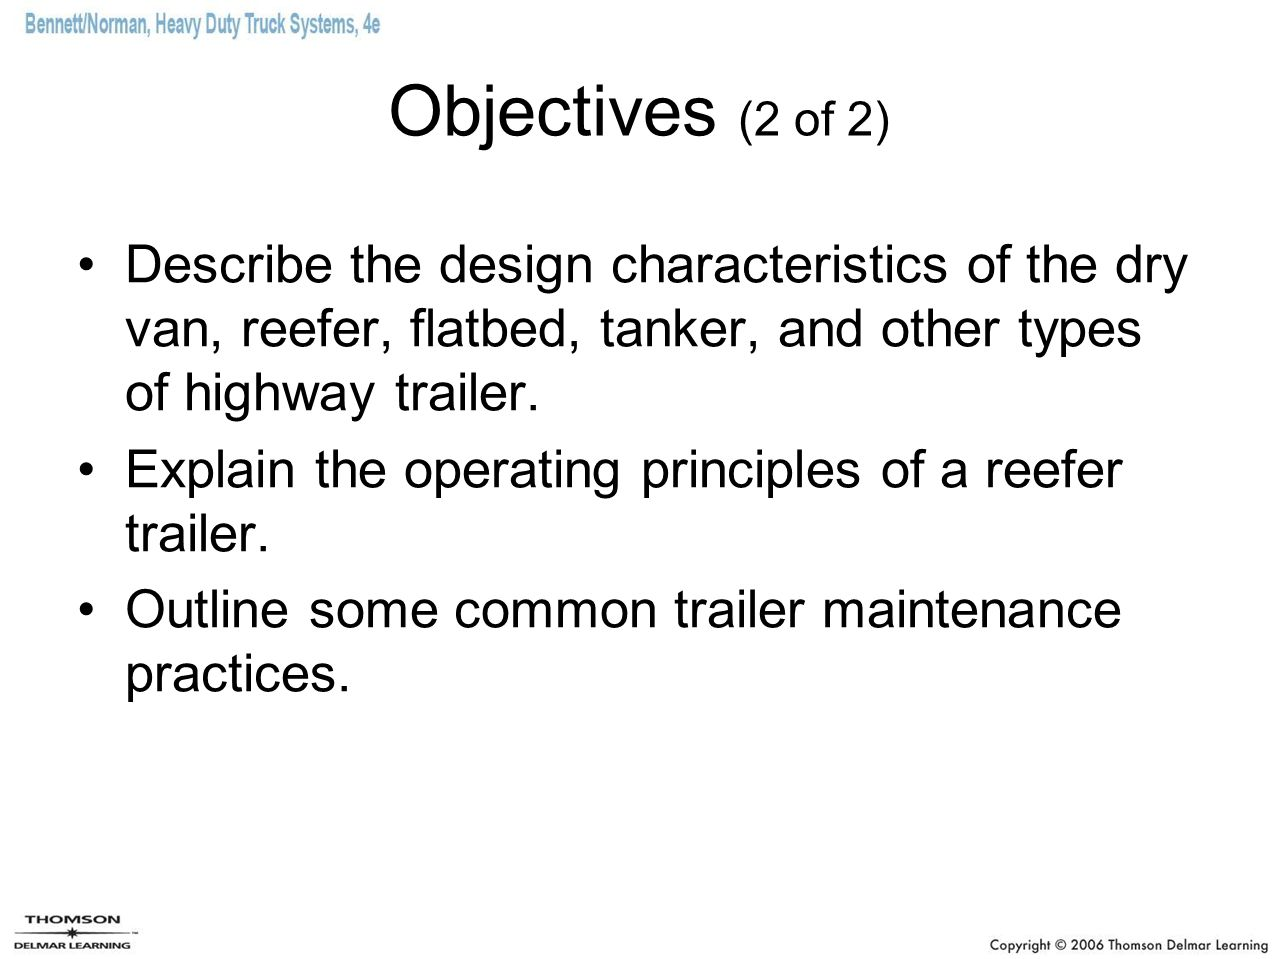 Objectives (2 of 2) Describe the design characteristics of the dry van, reefer, flatbed, tanker, and other types of highway trailer.